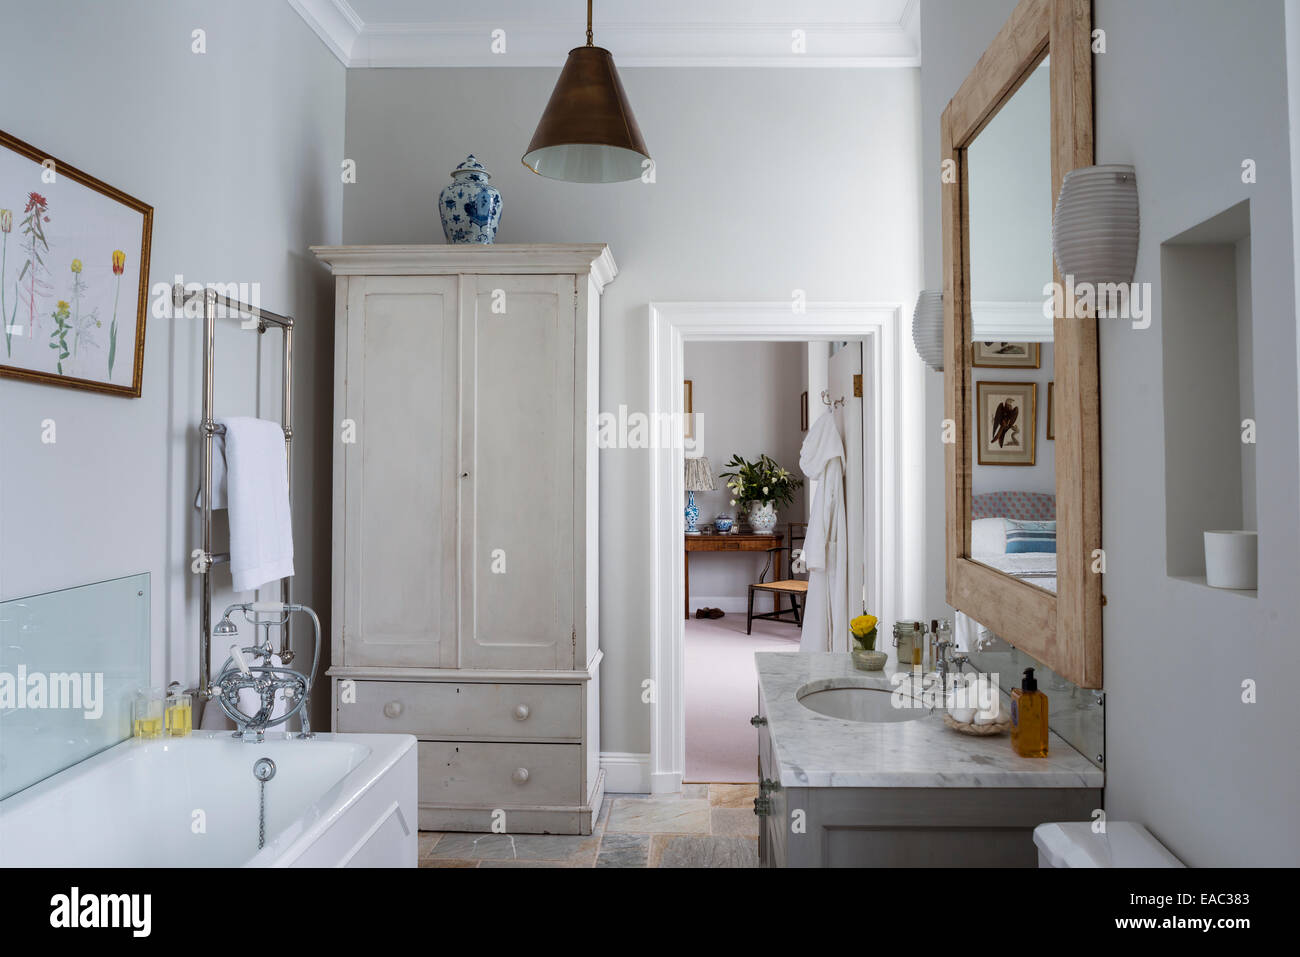 Marble-topped hand basin unit from Pymalion Interiors in bathroom with wooden wardrobe - Stock Image